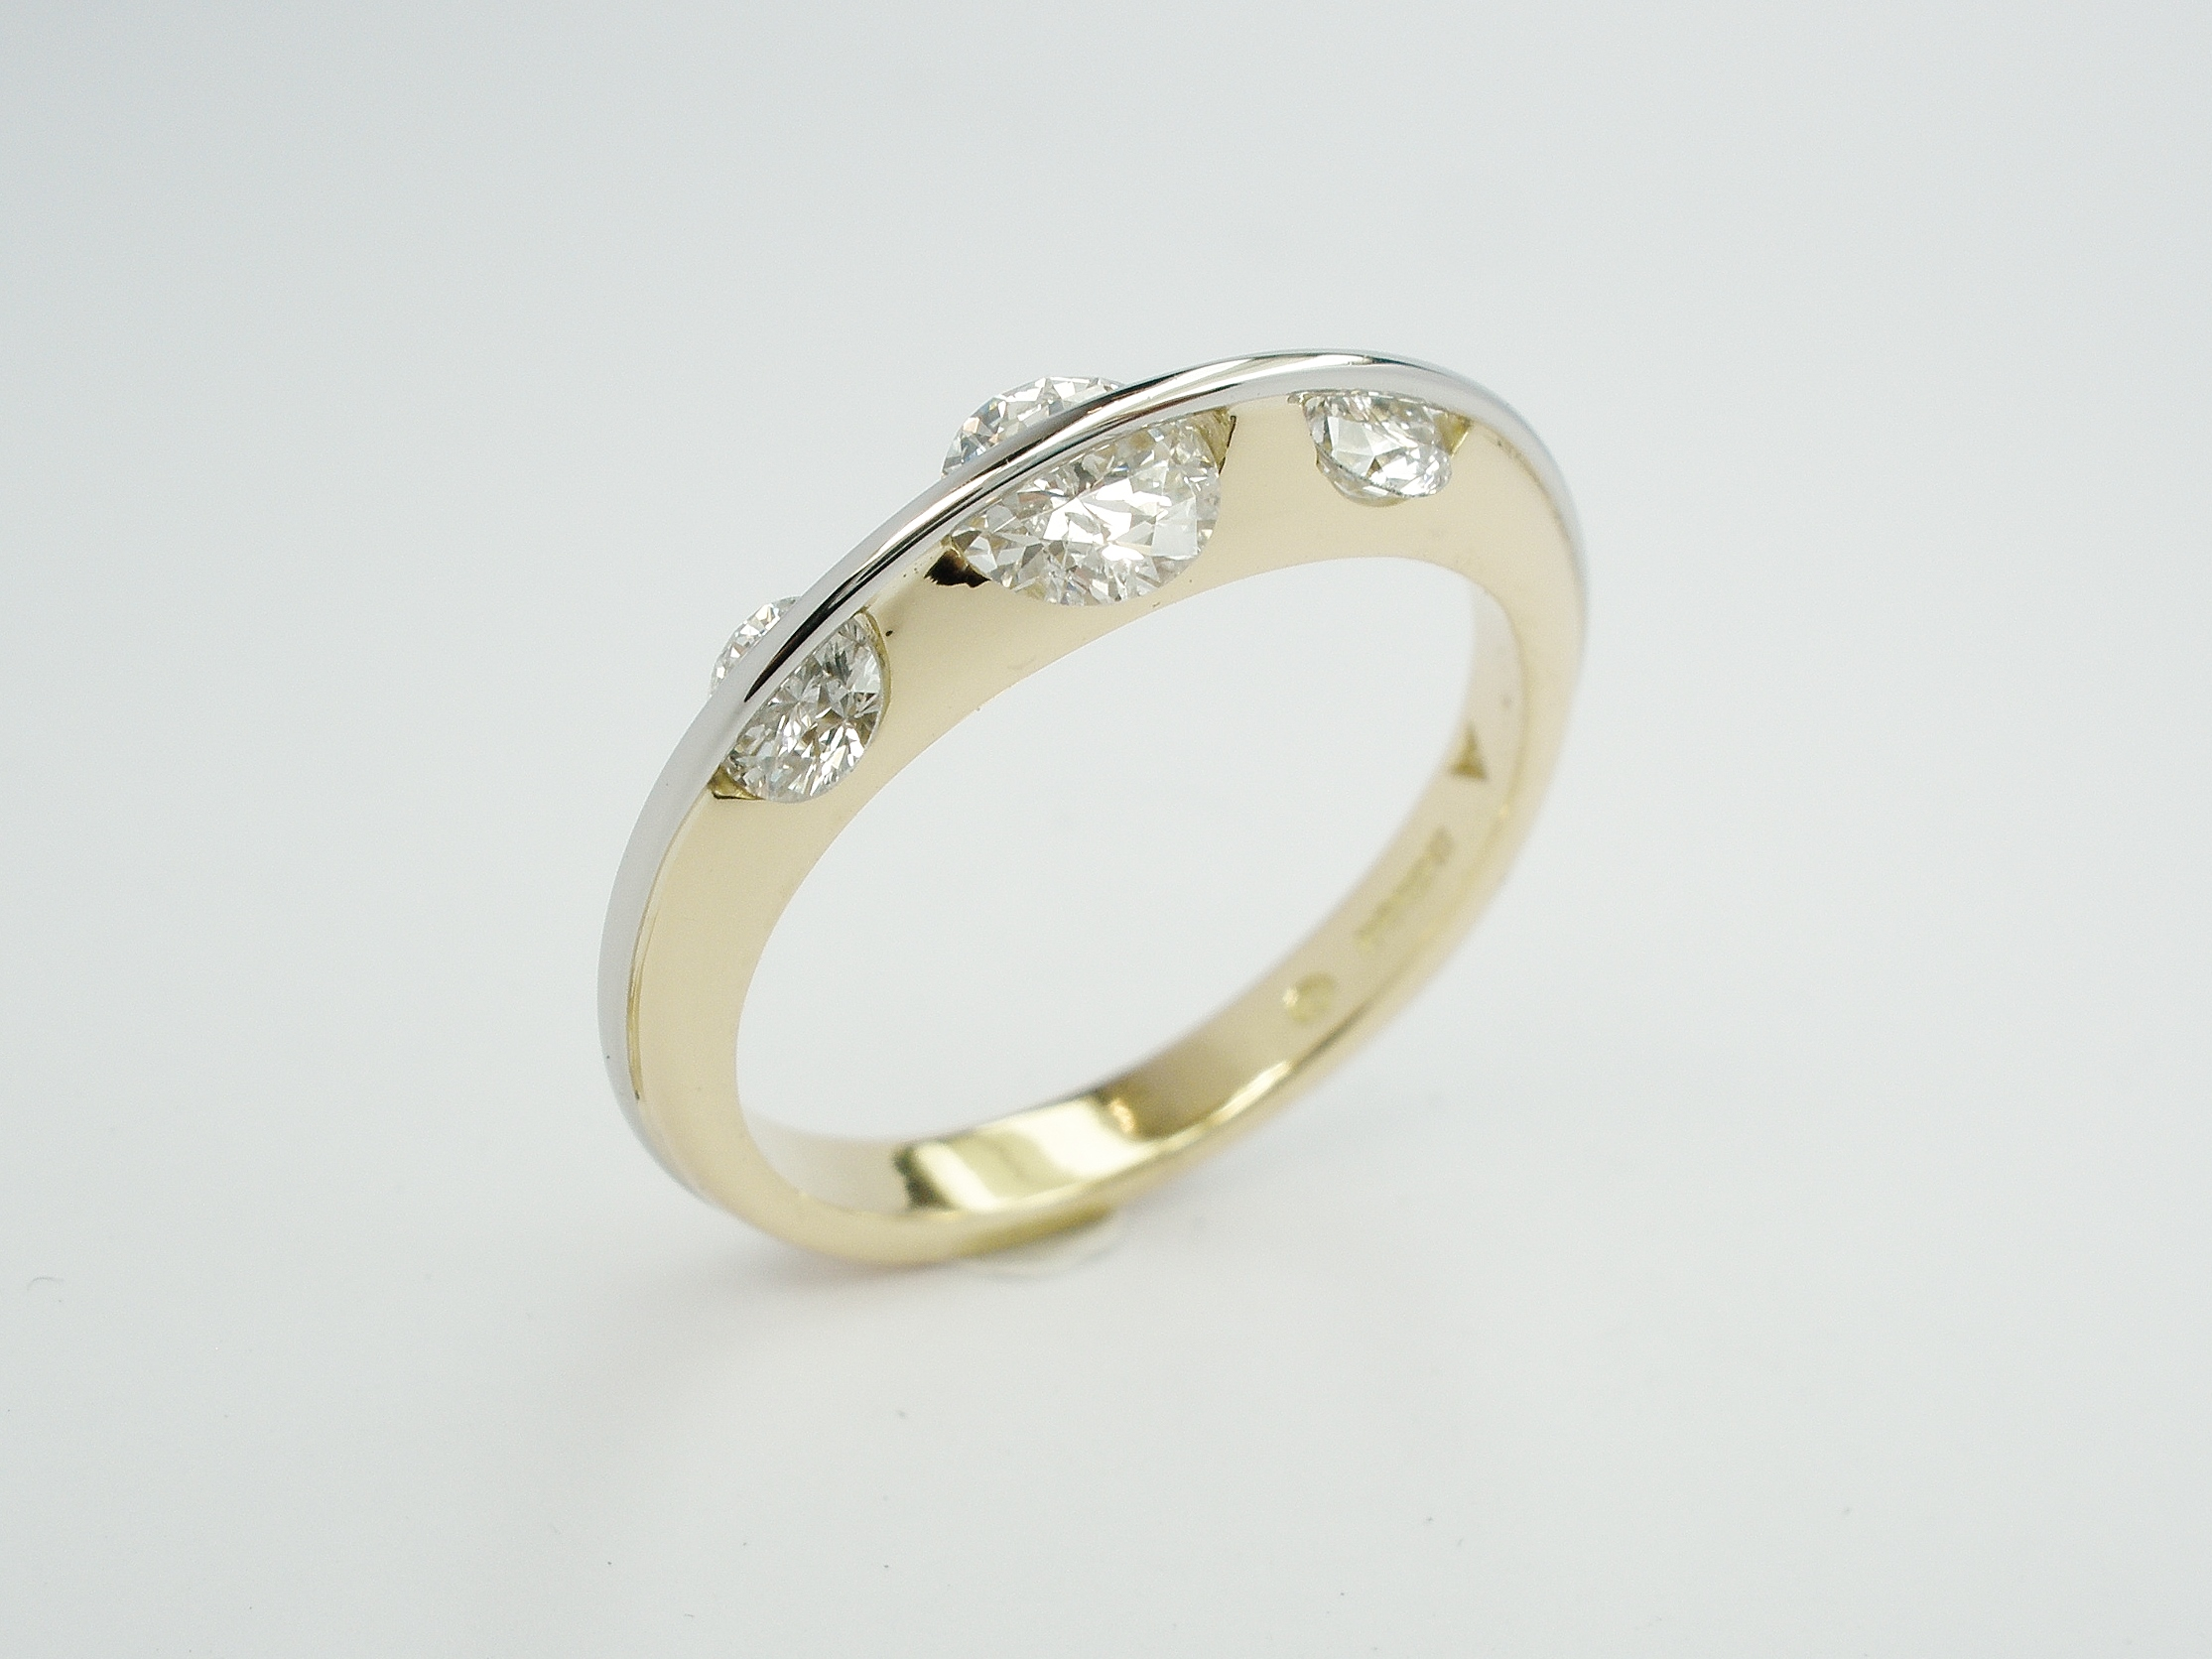 3 stone round brilliant cut 'D' colour diamond 'Lunar' ring mounted in 18ct. yellow gold and platinum. Ideal size of centre diamond 0.45ct to 0.75ct.